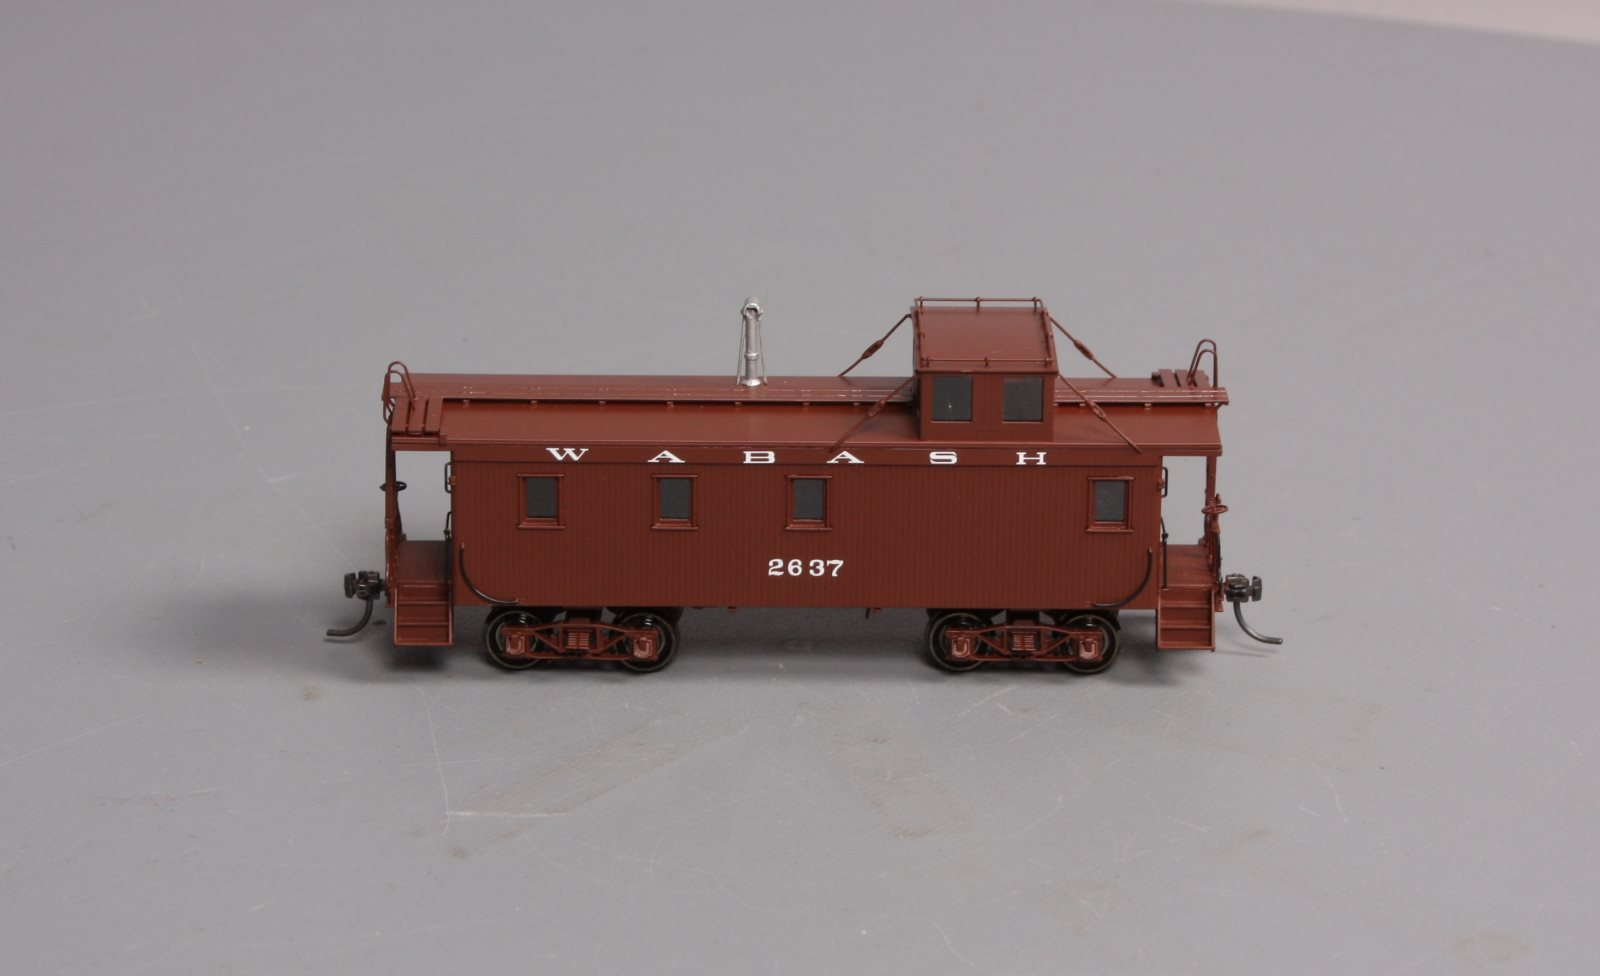 Overland 087030012.1 HO BRASS Wabash Wood-Side Caboose #2637 LN/Box  Overland 087030012.1